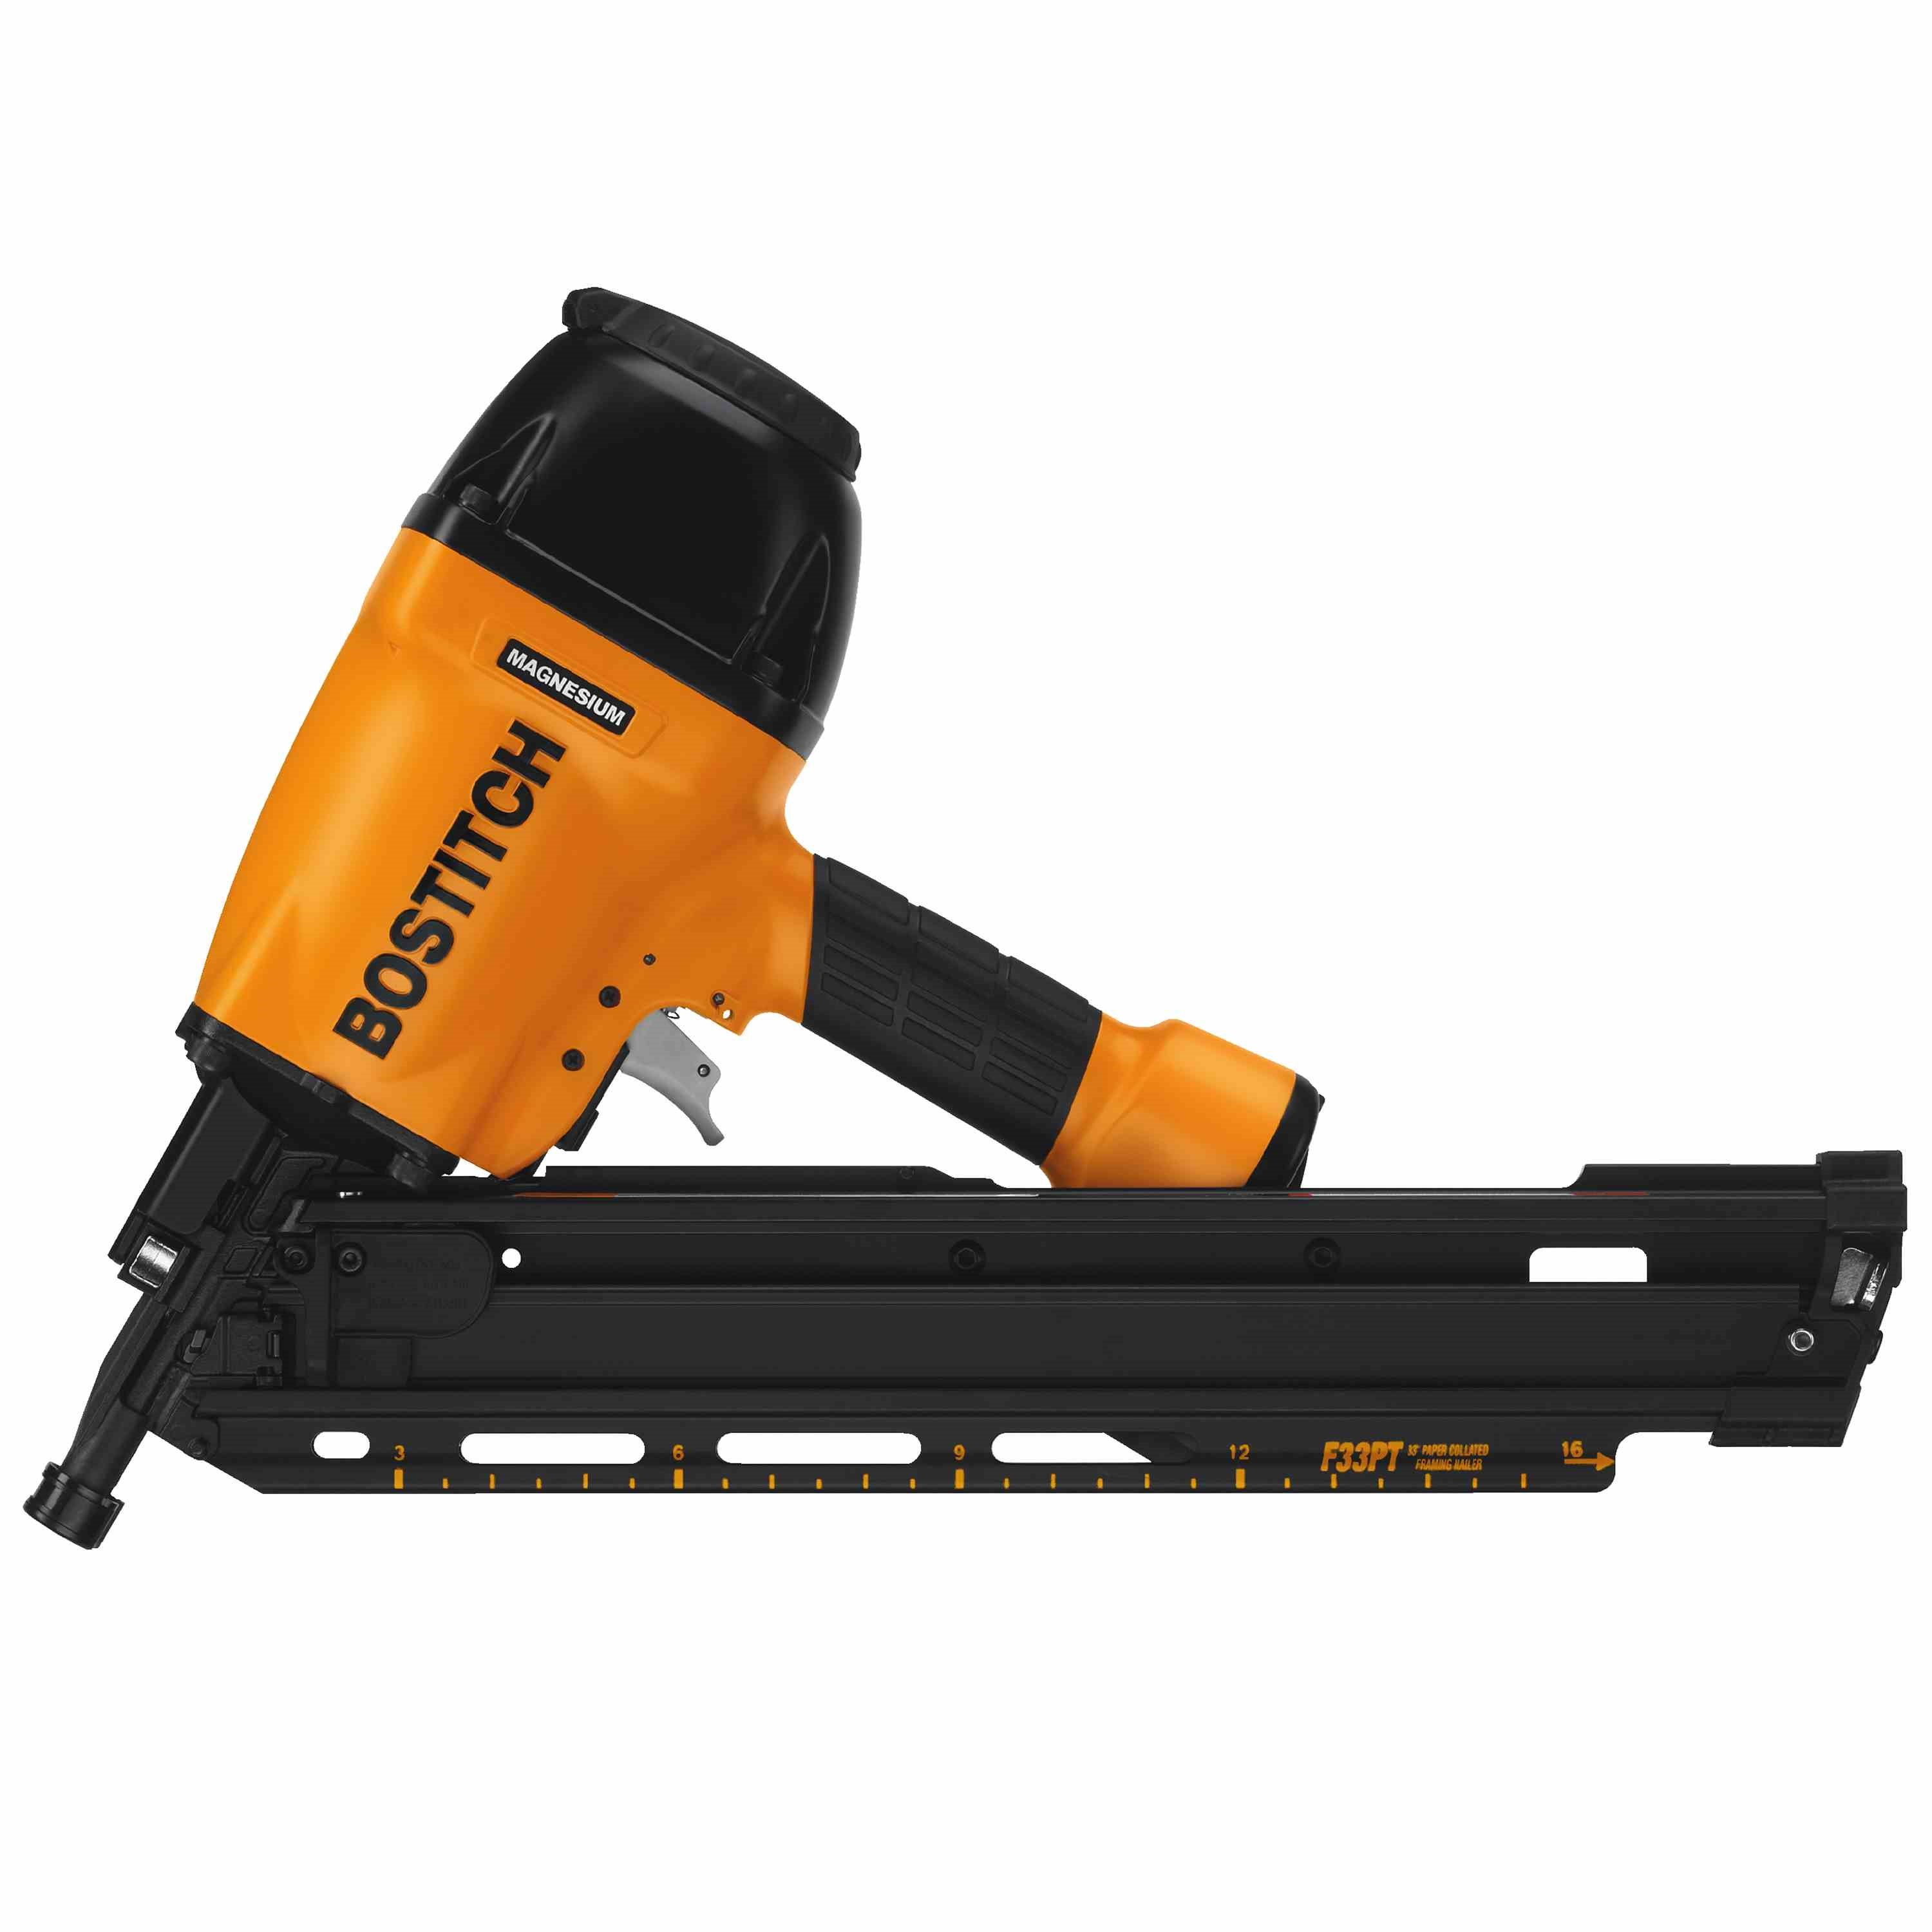 Picture of Bostitch F33PT Framing Nailer, 80 Magazine, 30 deg Collation, Paper Collation, 2 to 3-1/2 in Fastener